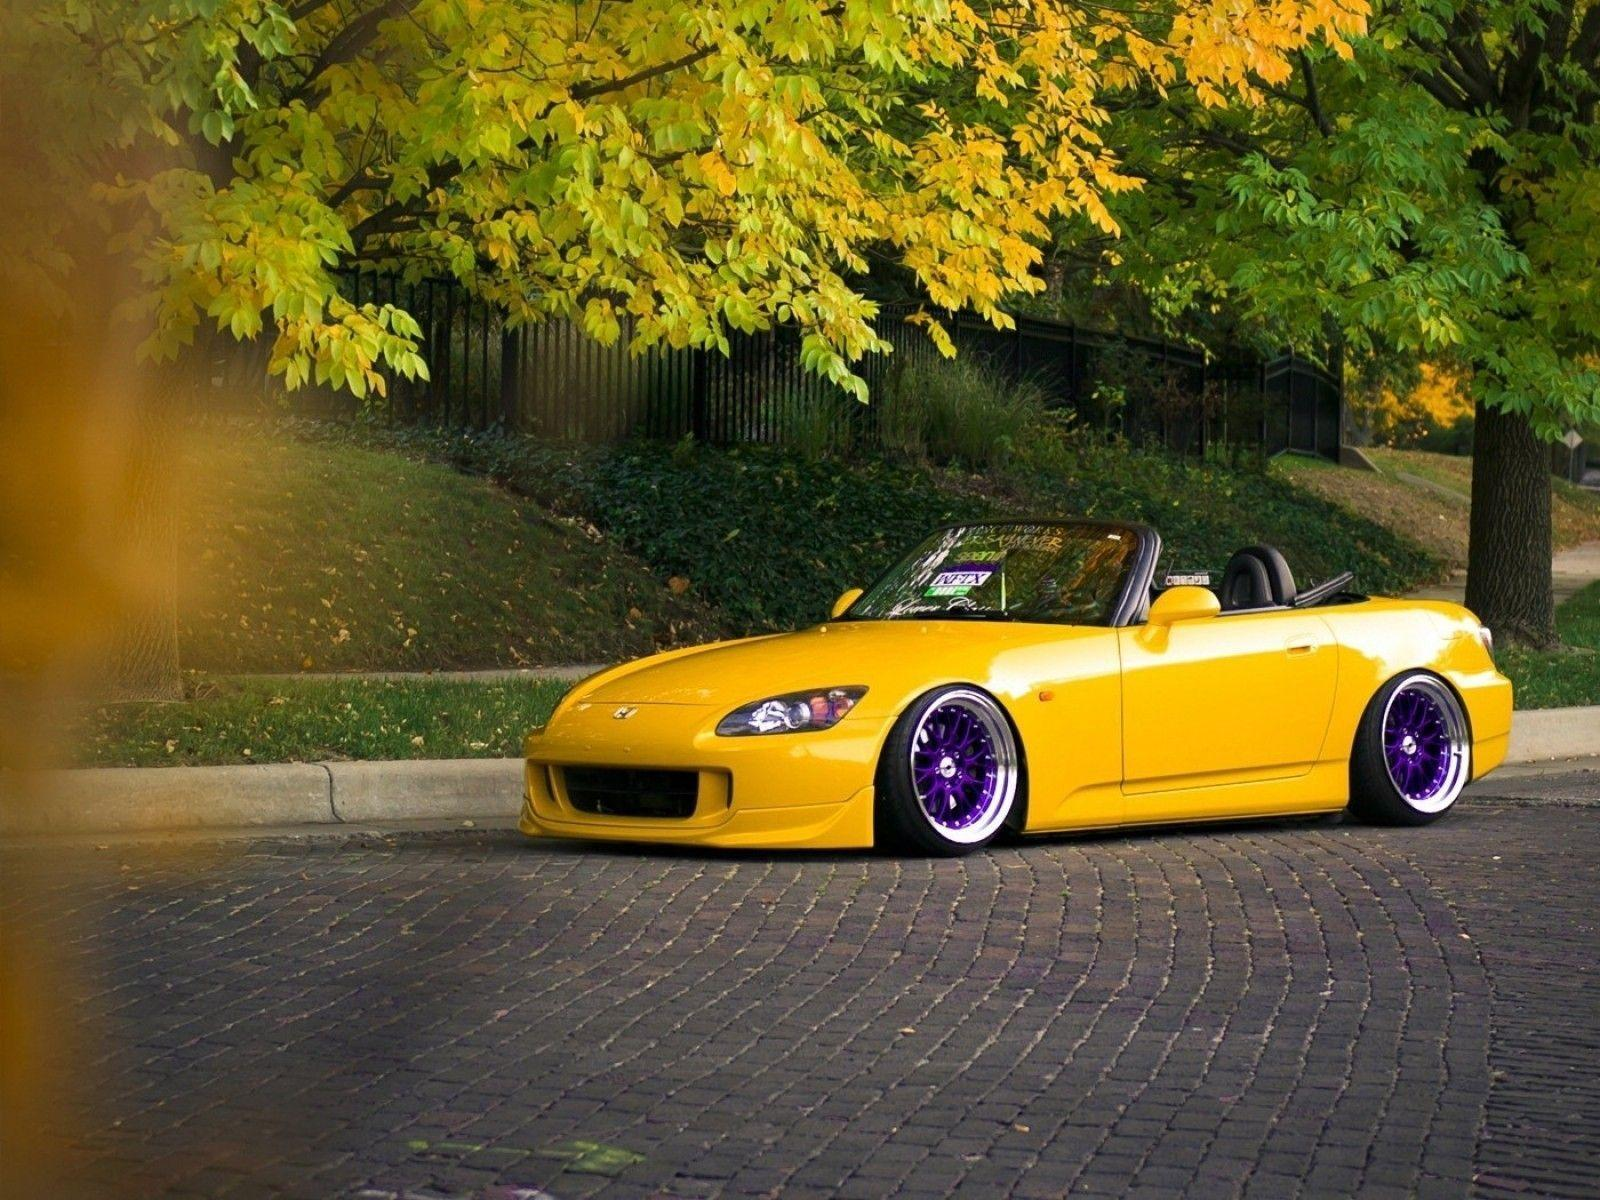 Modified S2000 >> S2000 Wallpapers - Wallpaper Cave